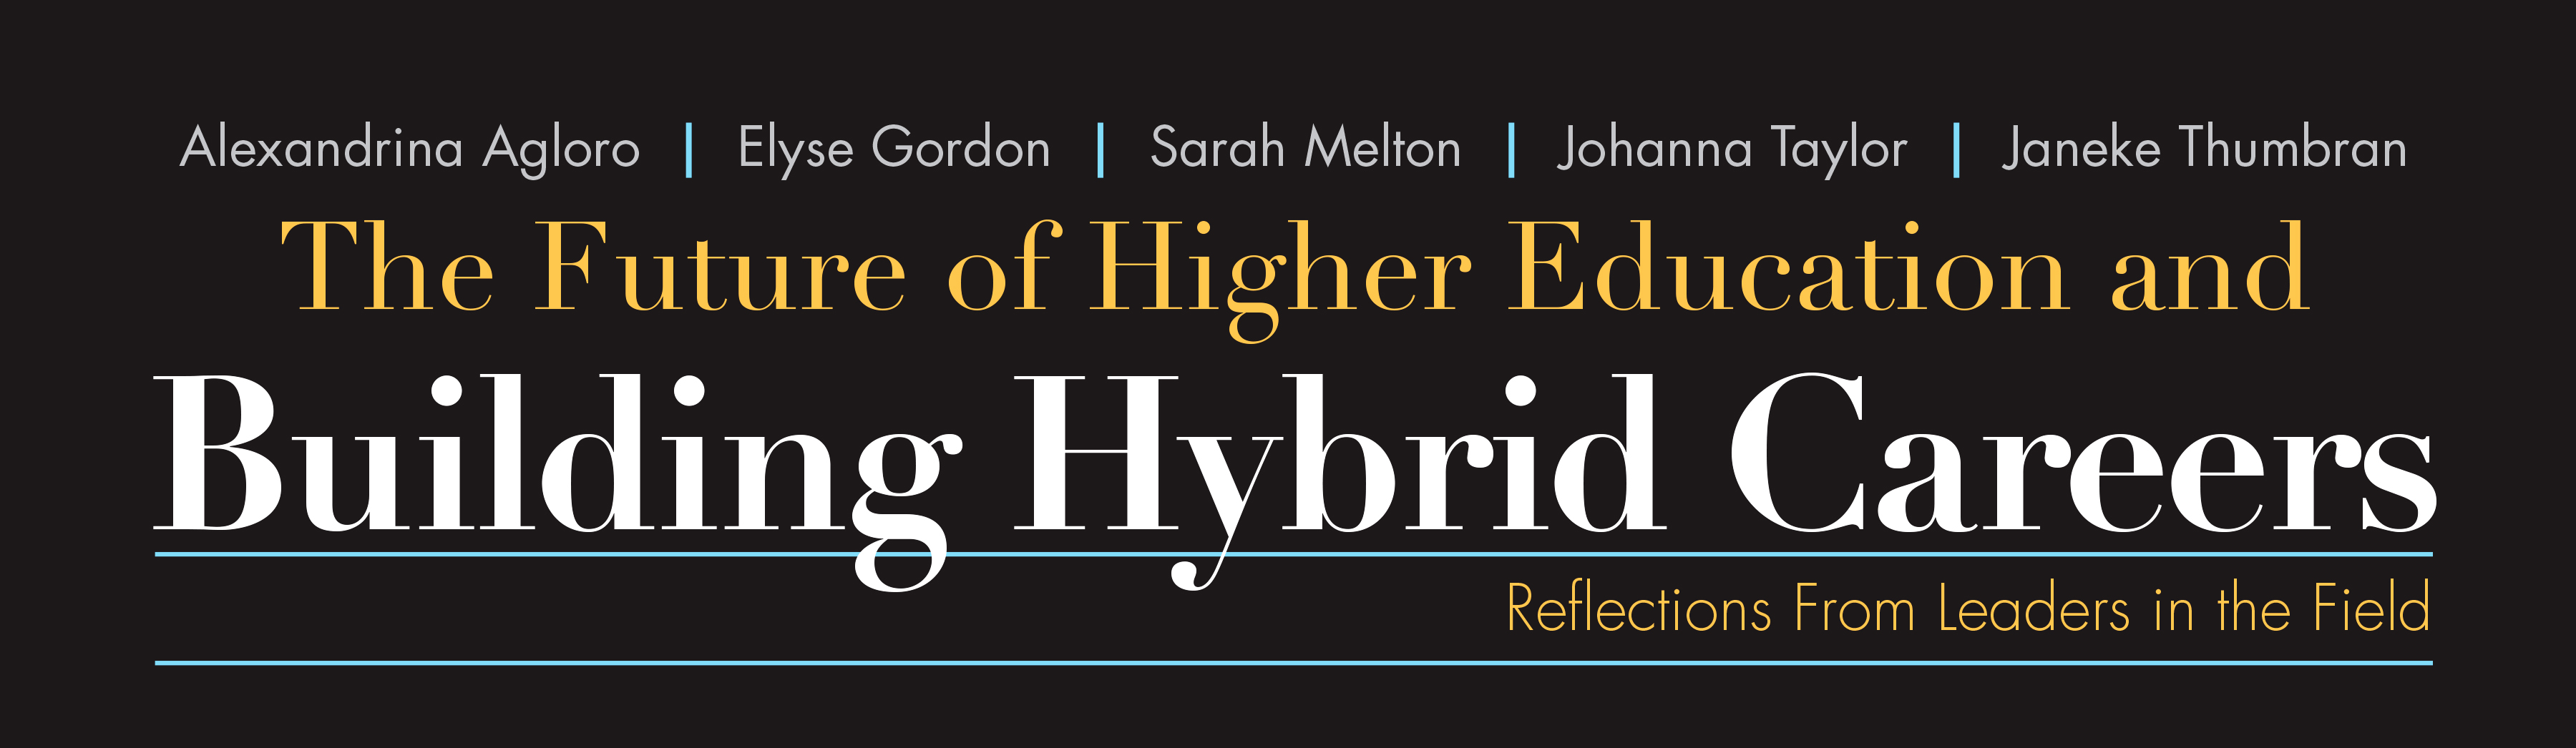 the future of higher education and building hybrid careers a journal of imagining america